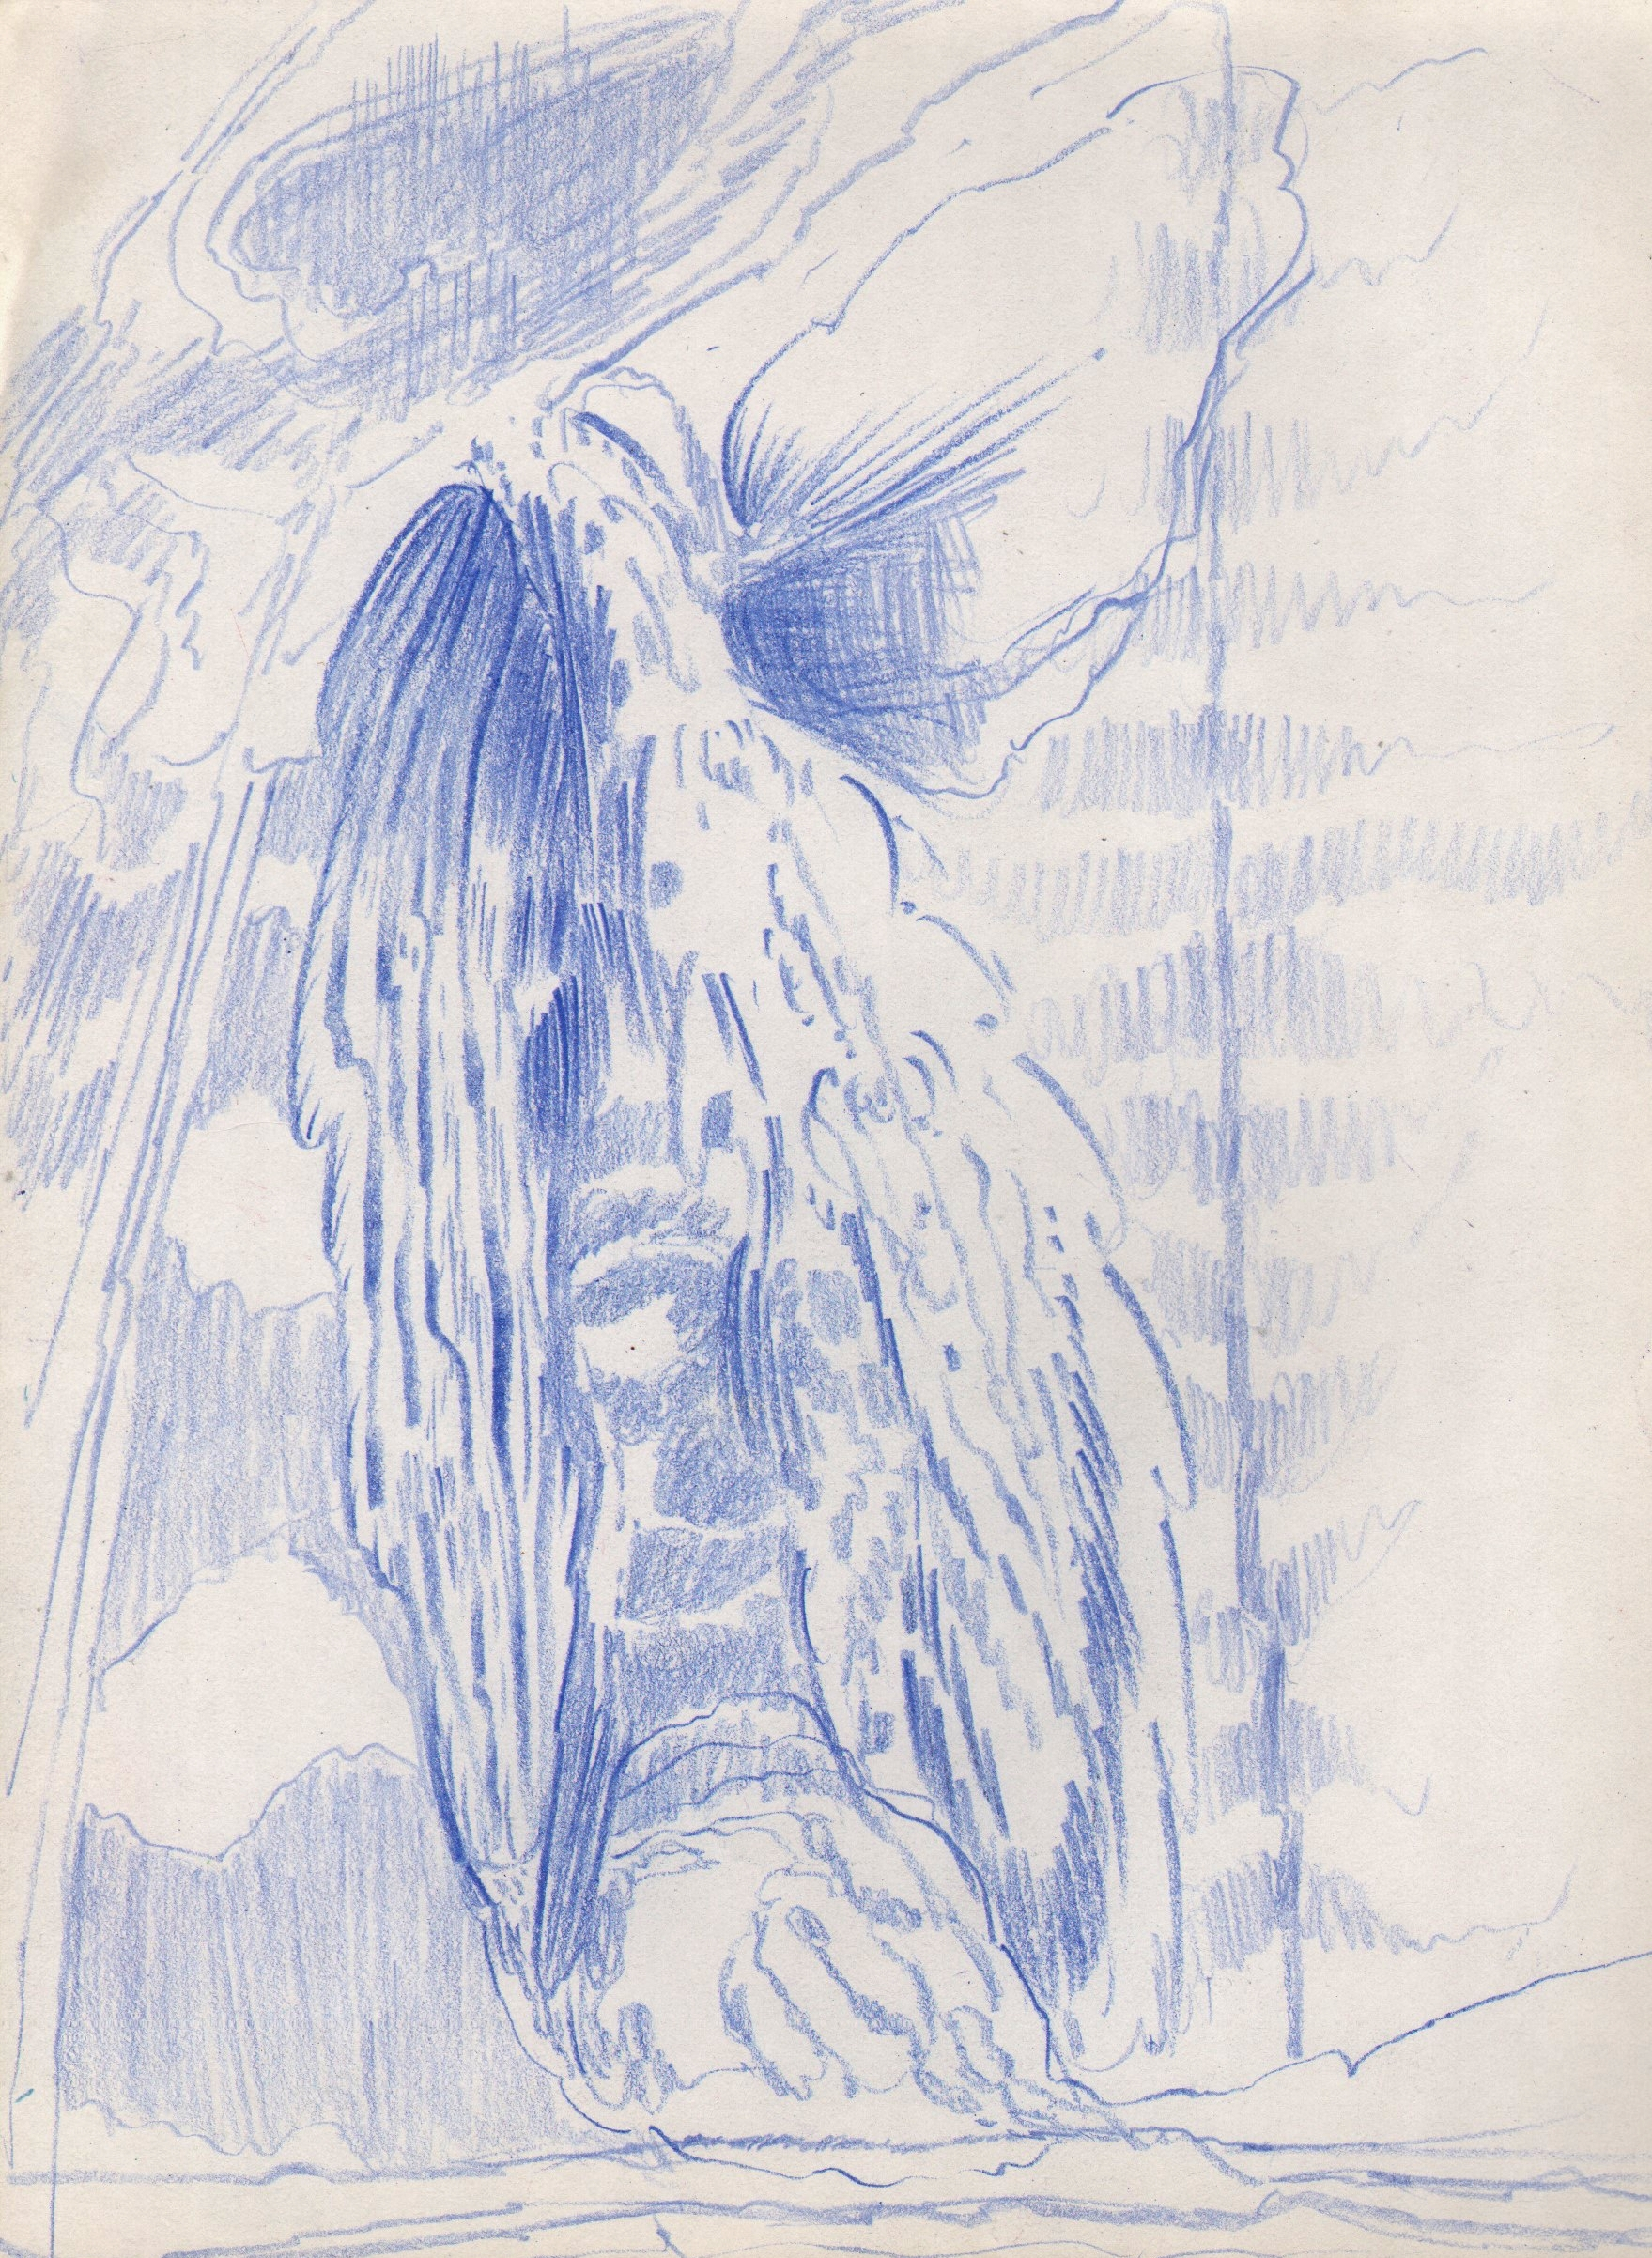 Blue Light Cascade, 2016, 8 x 6 inches, pencil on paper